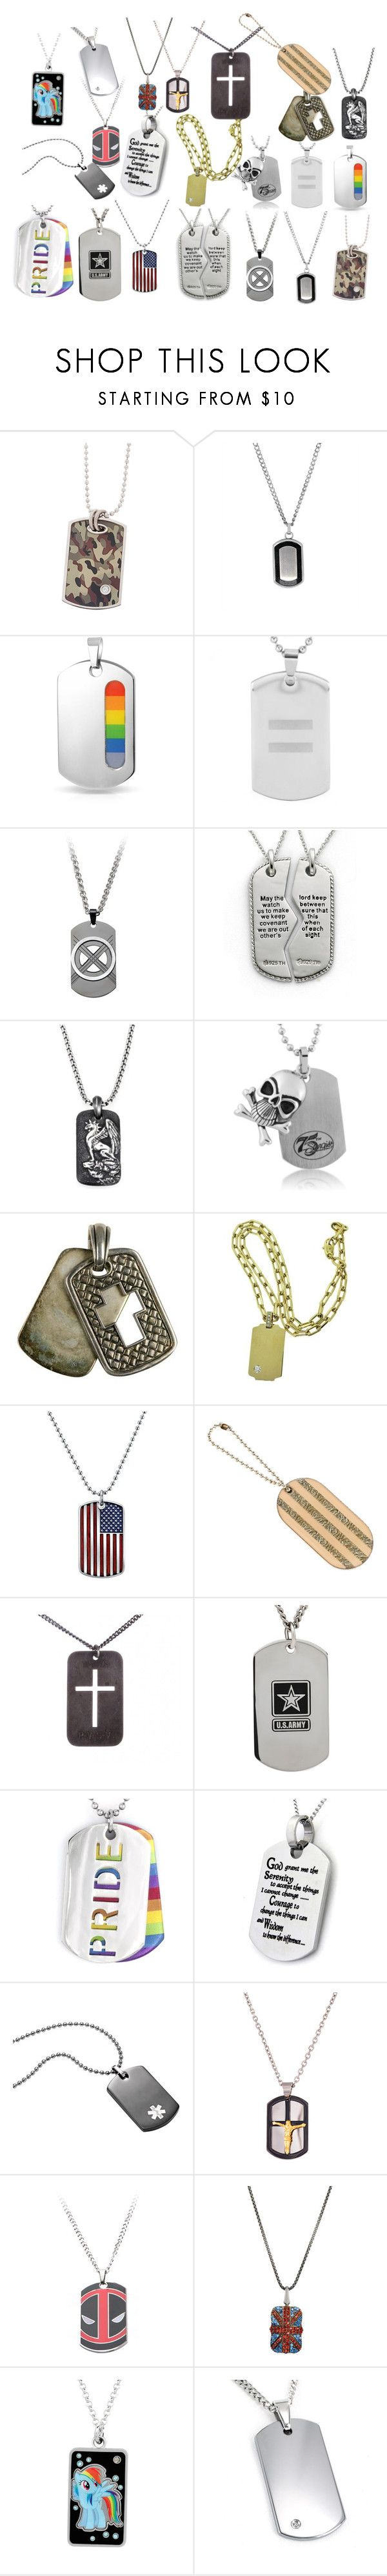 """Dog Tags"" by the-killer-of-dreams ❤ liked on Polyvore featuring Bling Jewelry, West Coast Jewelry, David Yurman, Scott Kay, Cartier, 1928, Chanel, Christian Dior, Creed 1913 and Marvel"